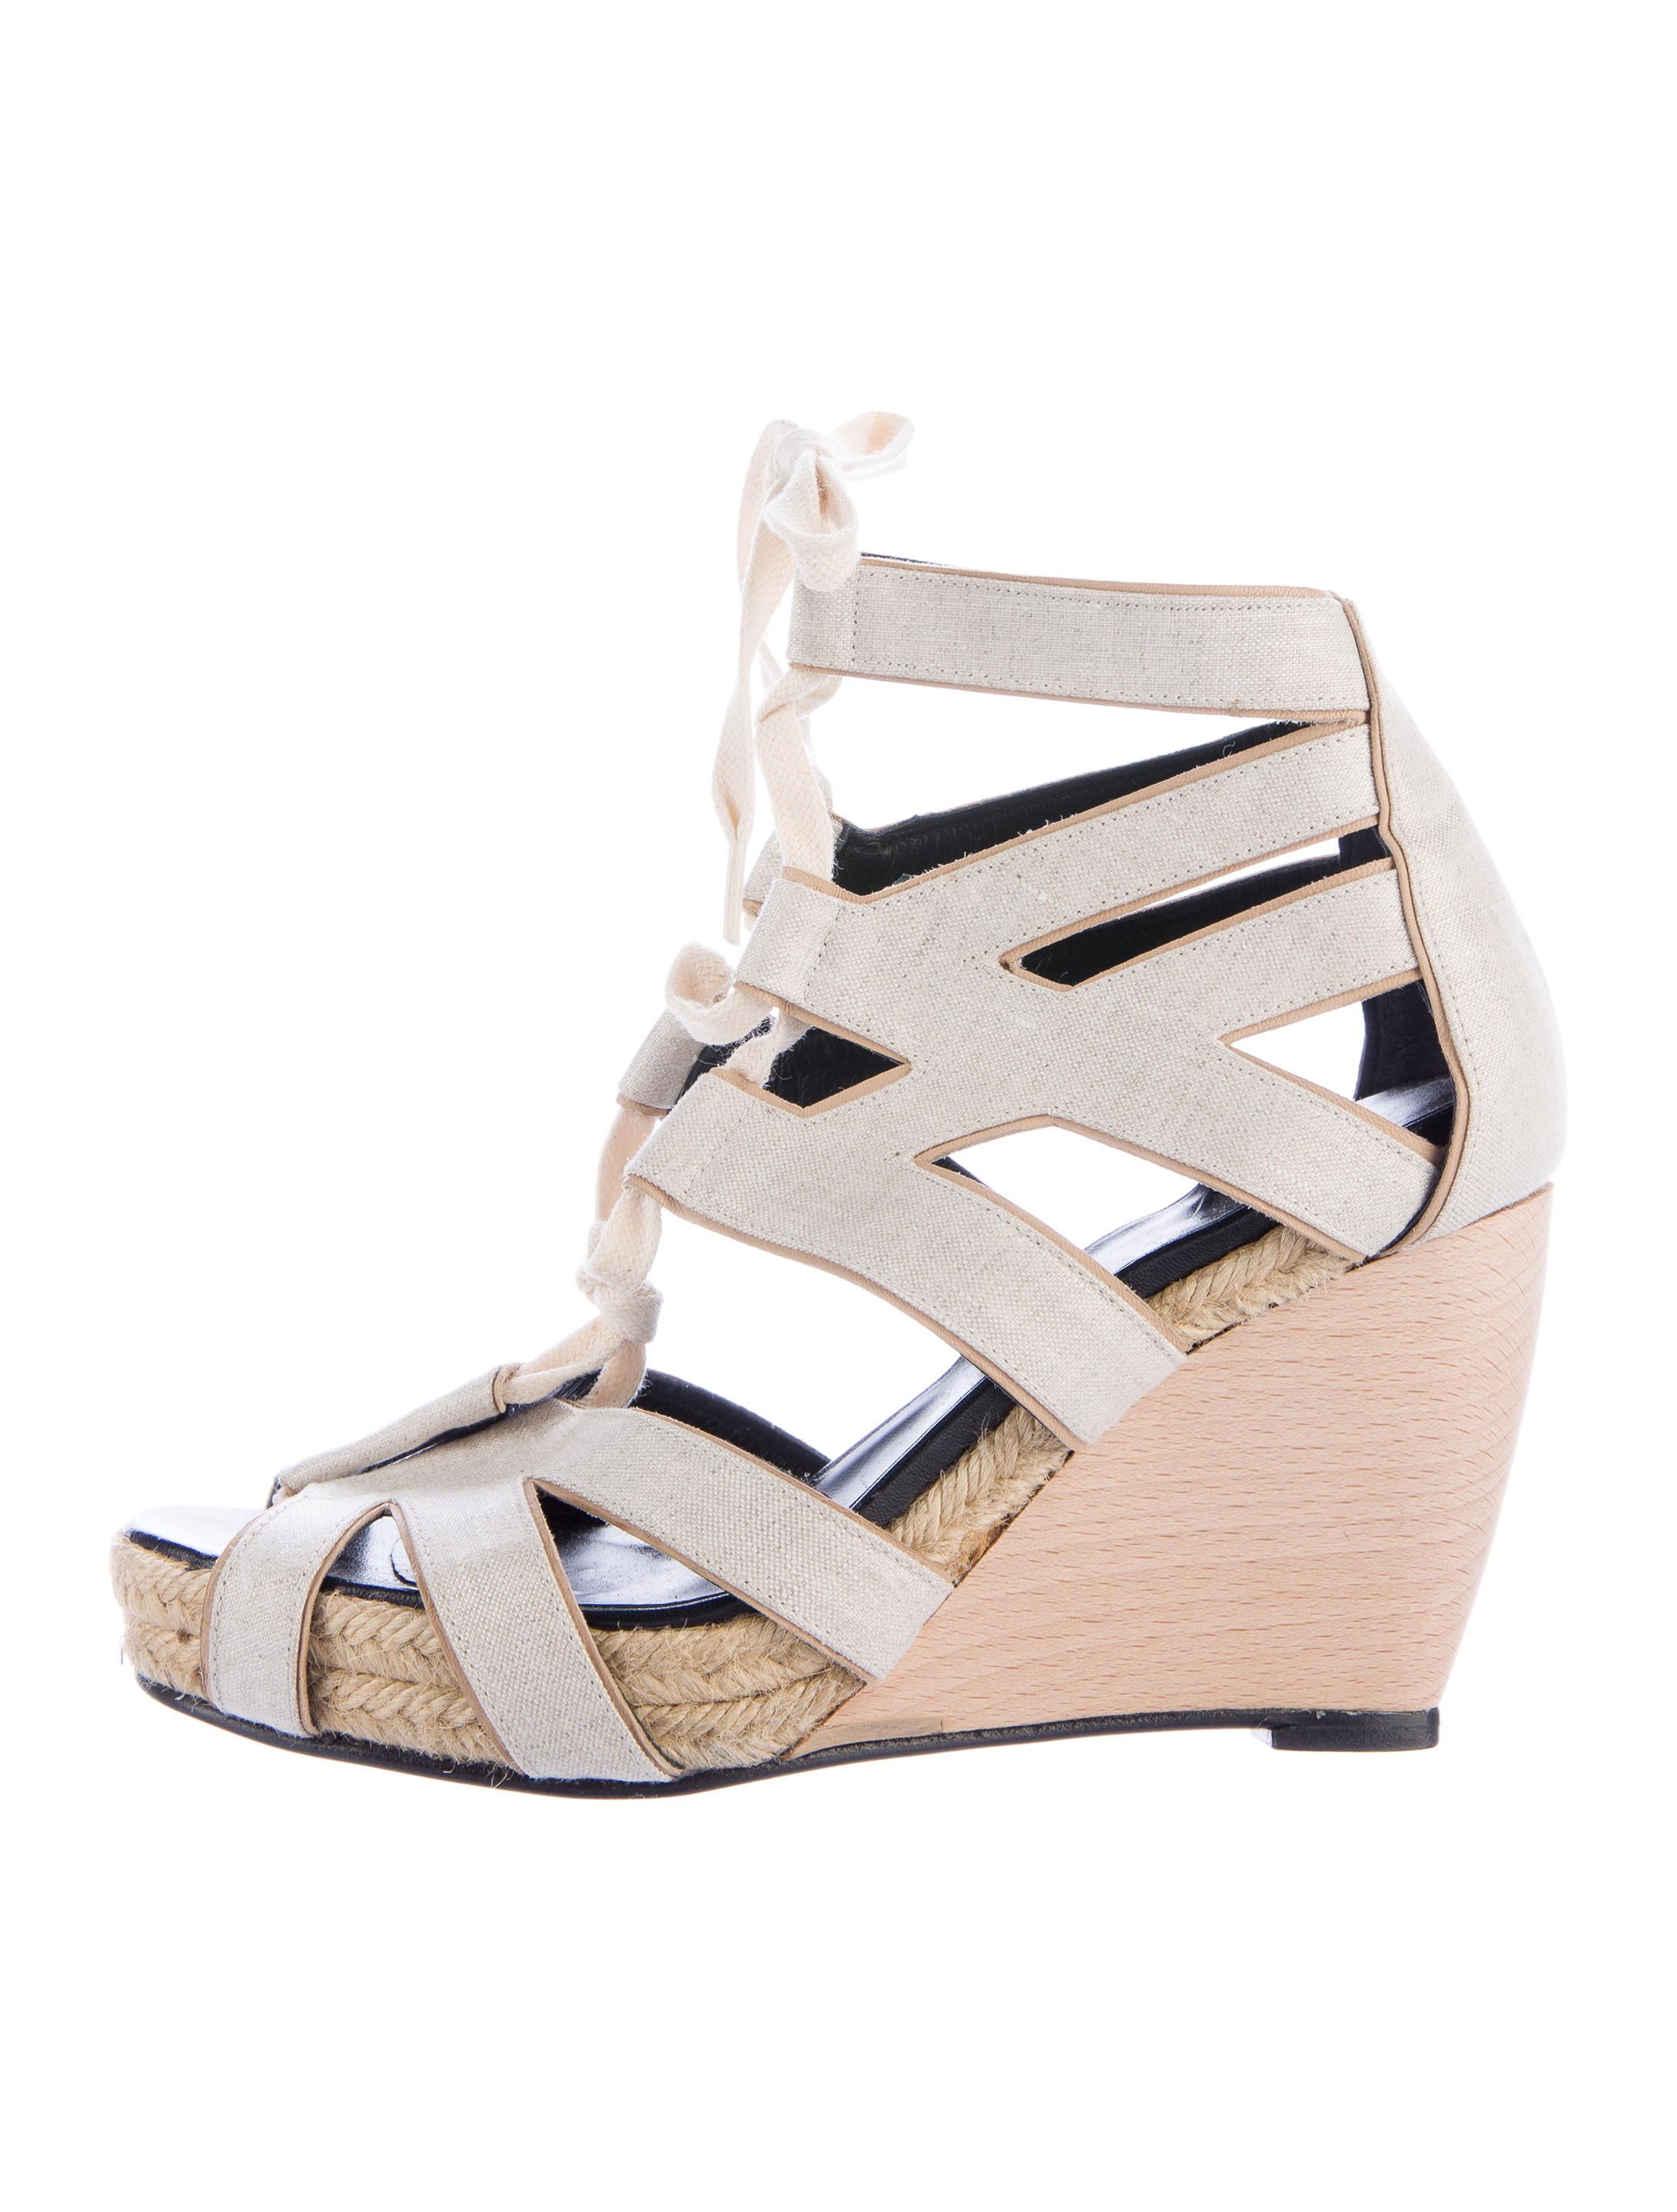 hardy espadrille wedge sandals shoes pie23514